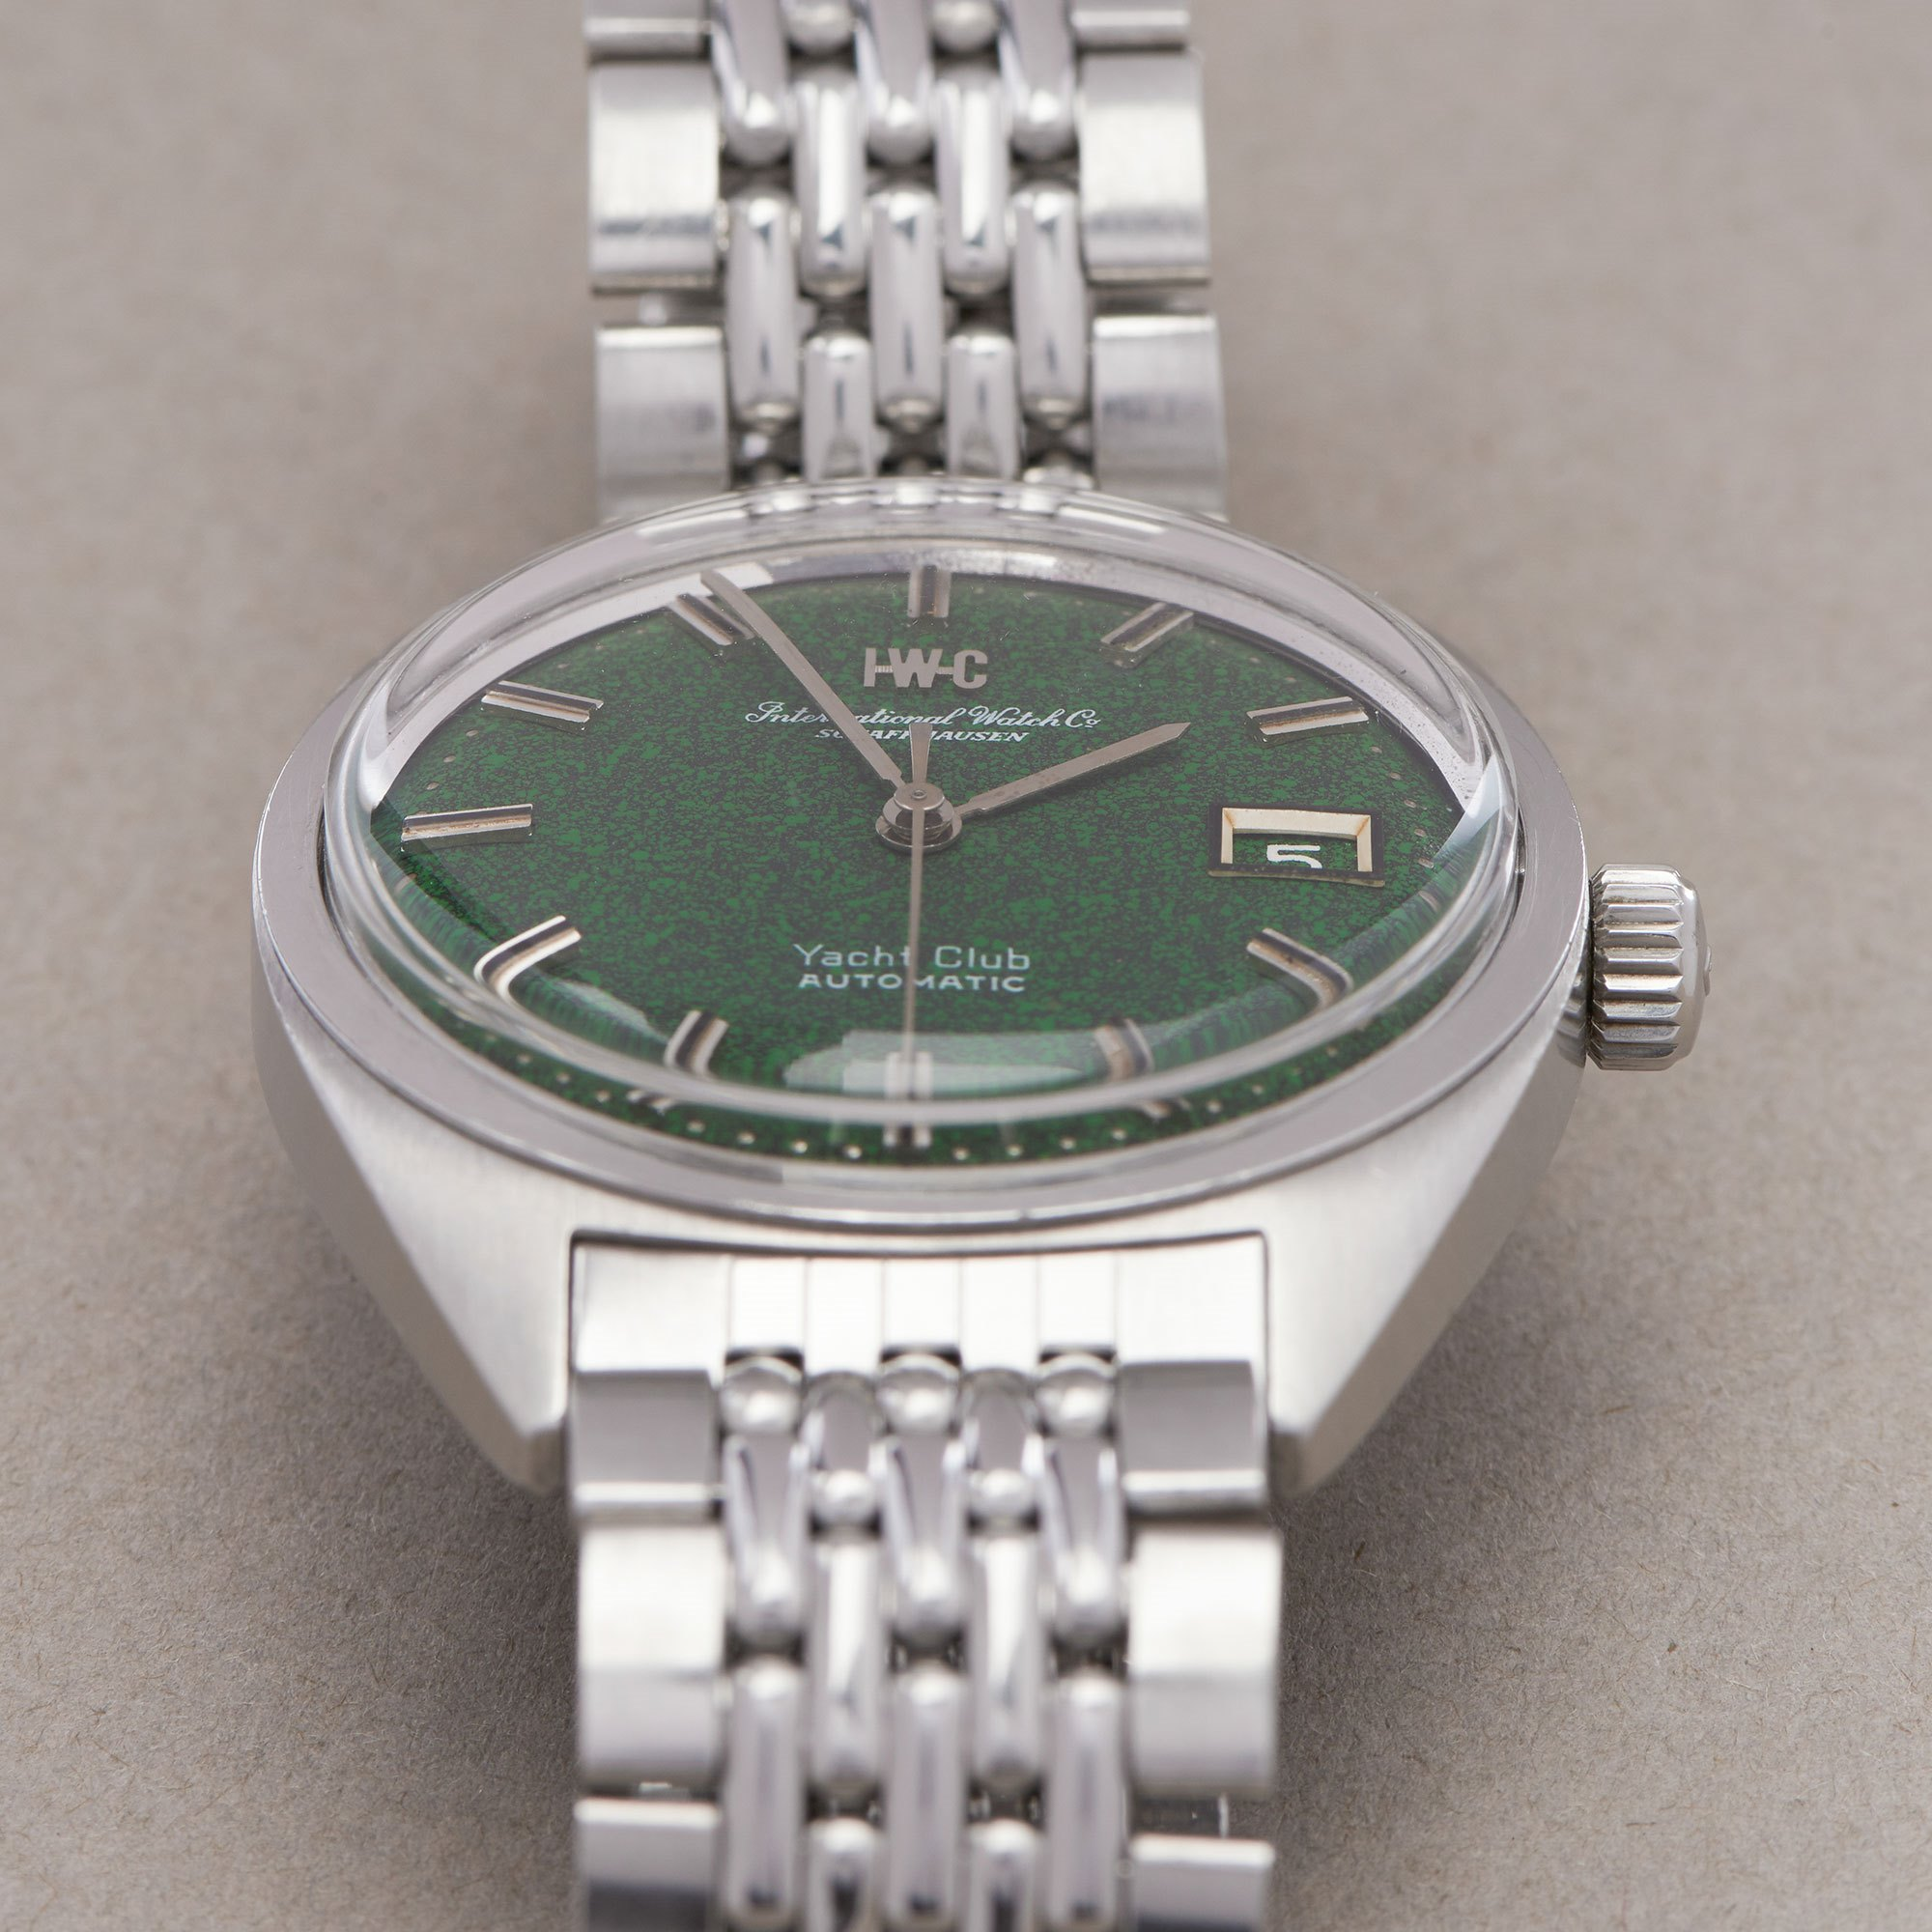 IWC Yacht Club Stainless Steel - 1811 Stainless Steel 1811